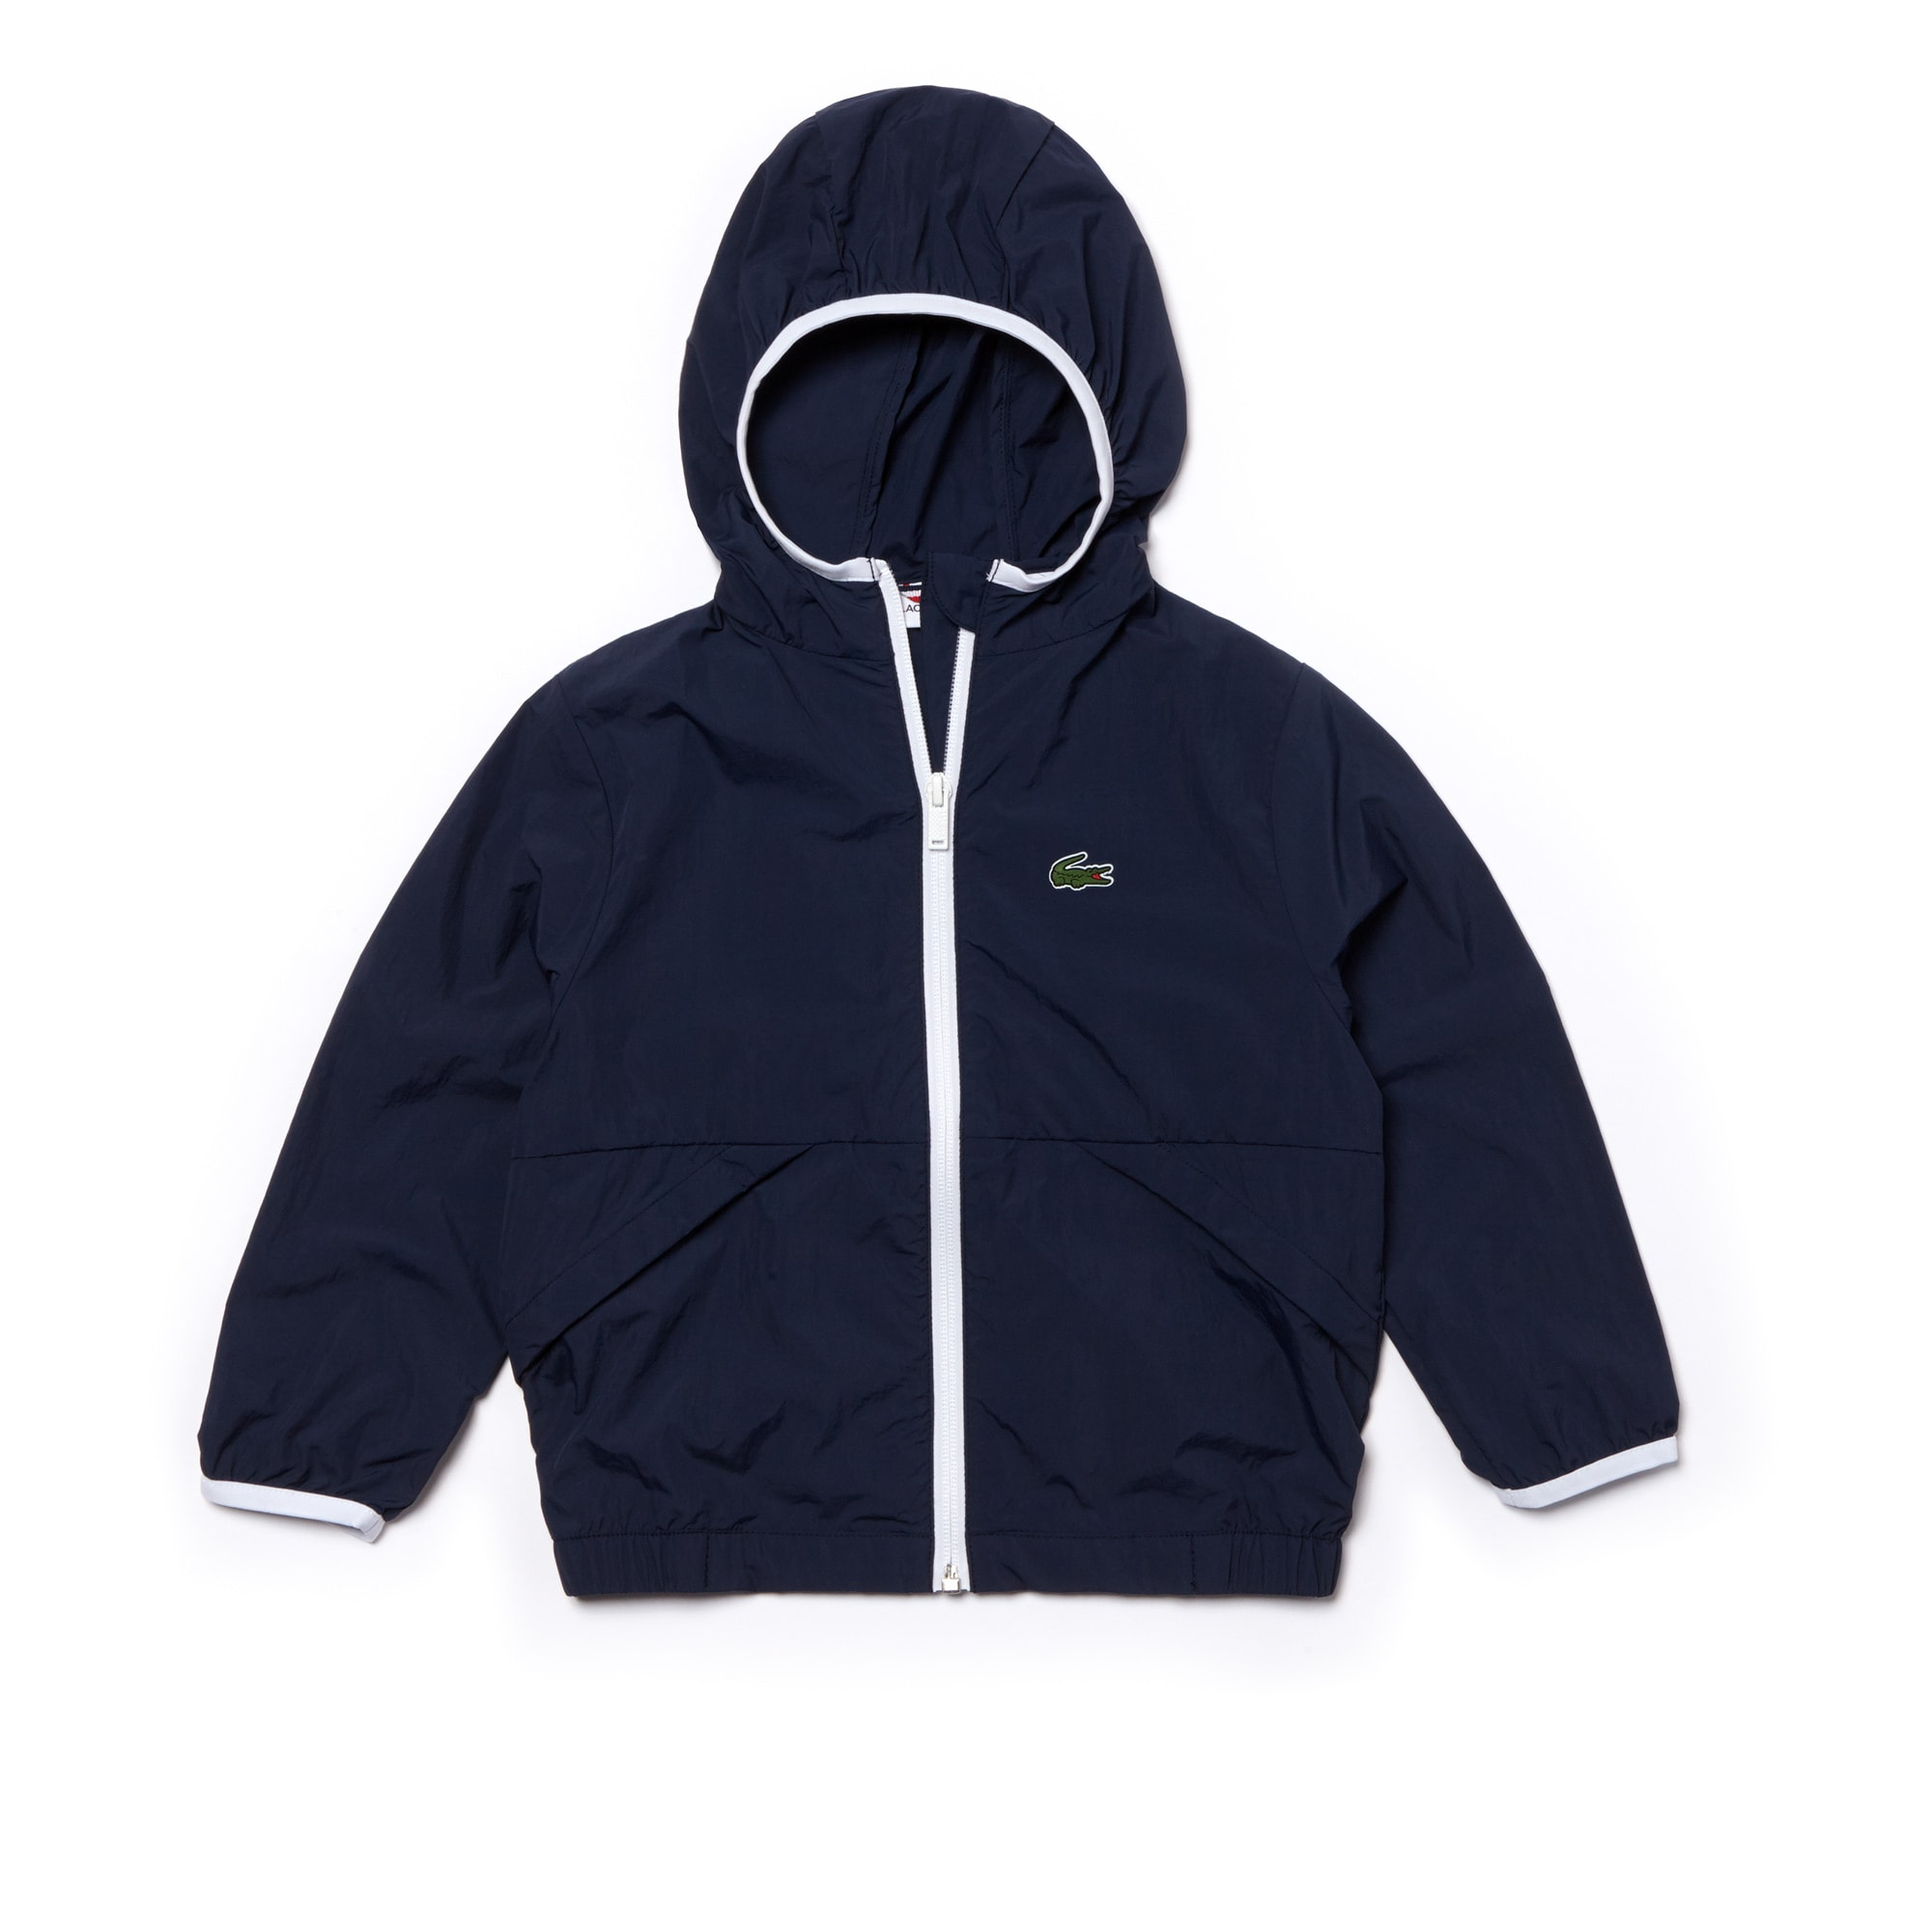 Boys' Contrast Accents Windbreaker